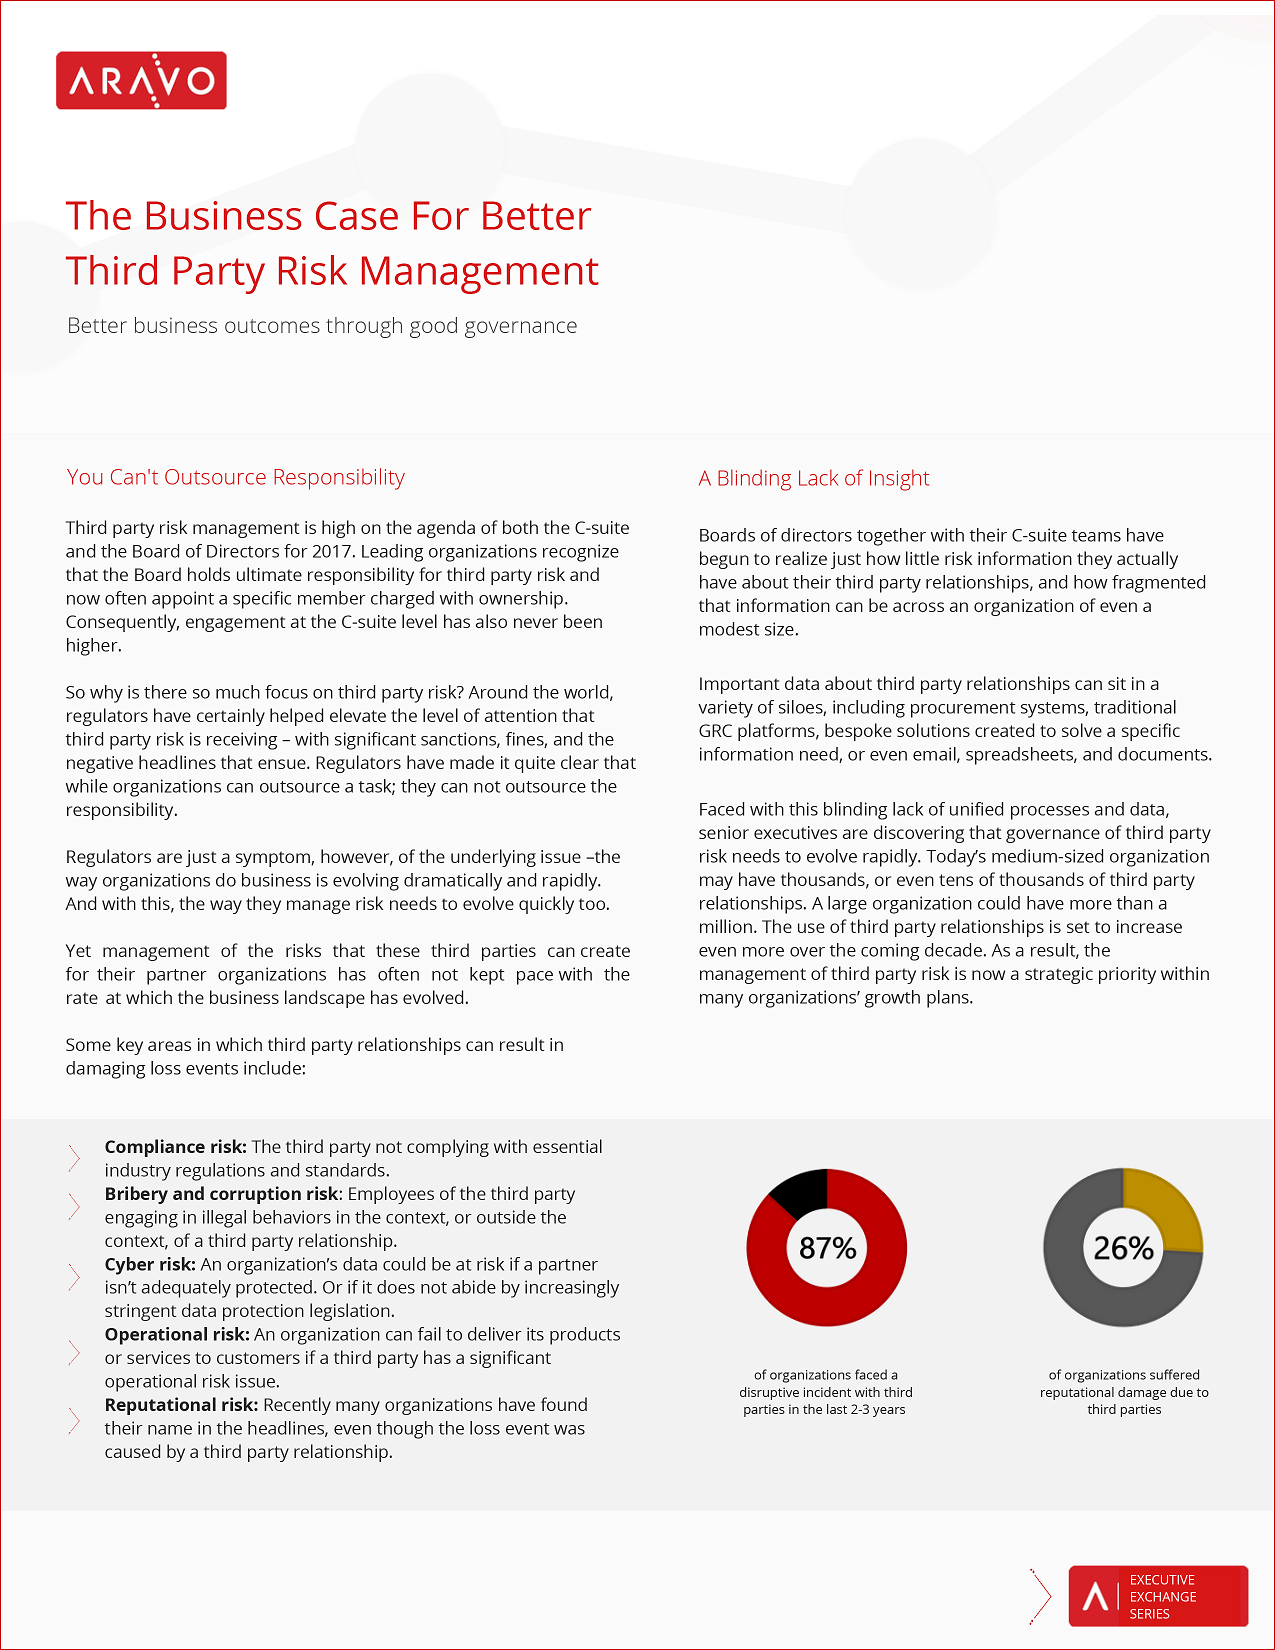 Aravo - The Business Case For Better Third Party Risk Management_sm.png